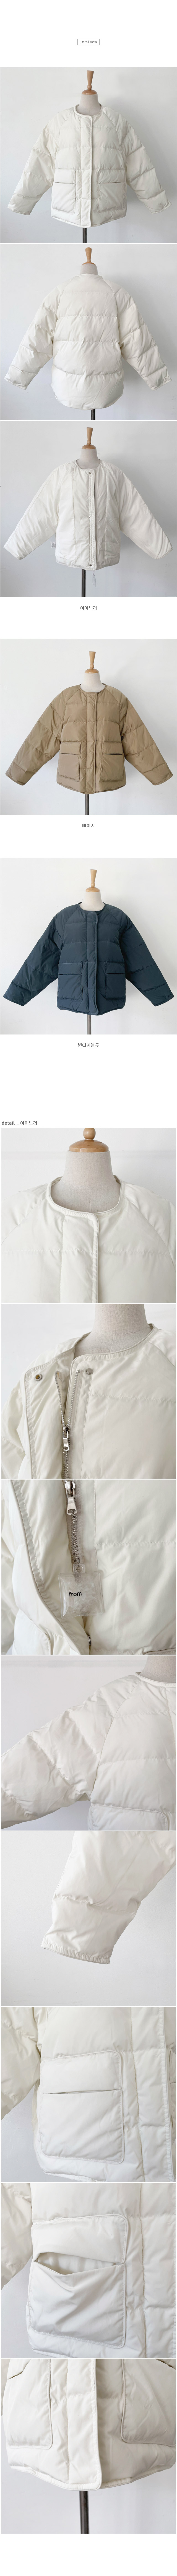 Tyco Duckdown Padded Jacket